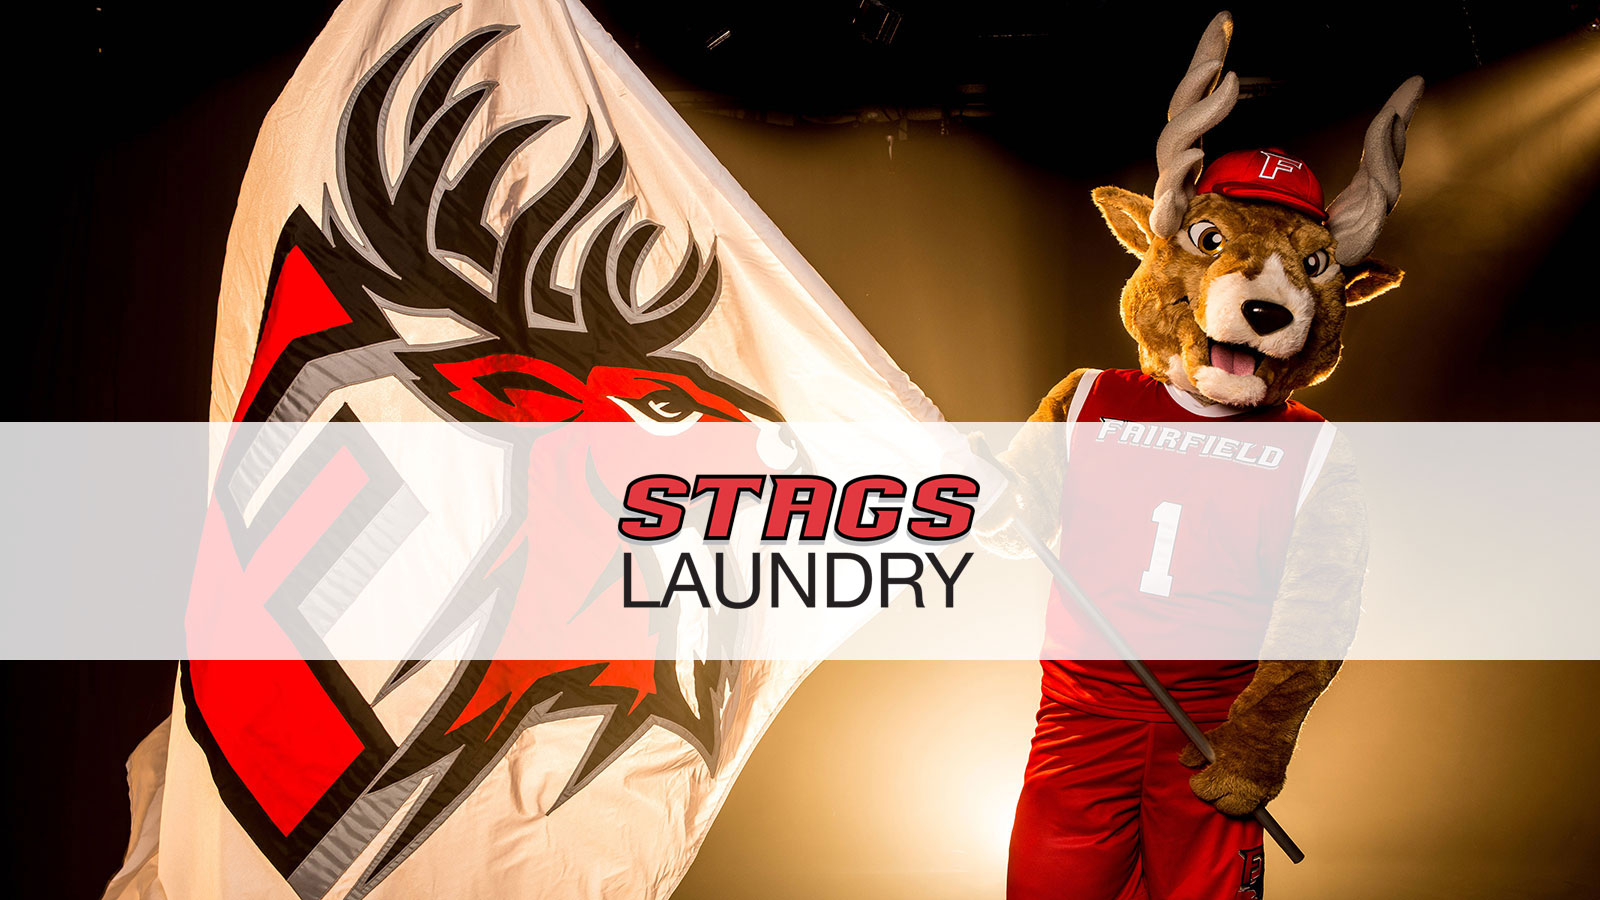 Image of Lucas the Stag holding a Fairfield University flag—overlayed with 'Stags Laundry' text banner